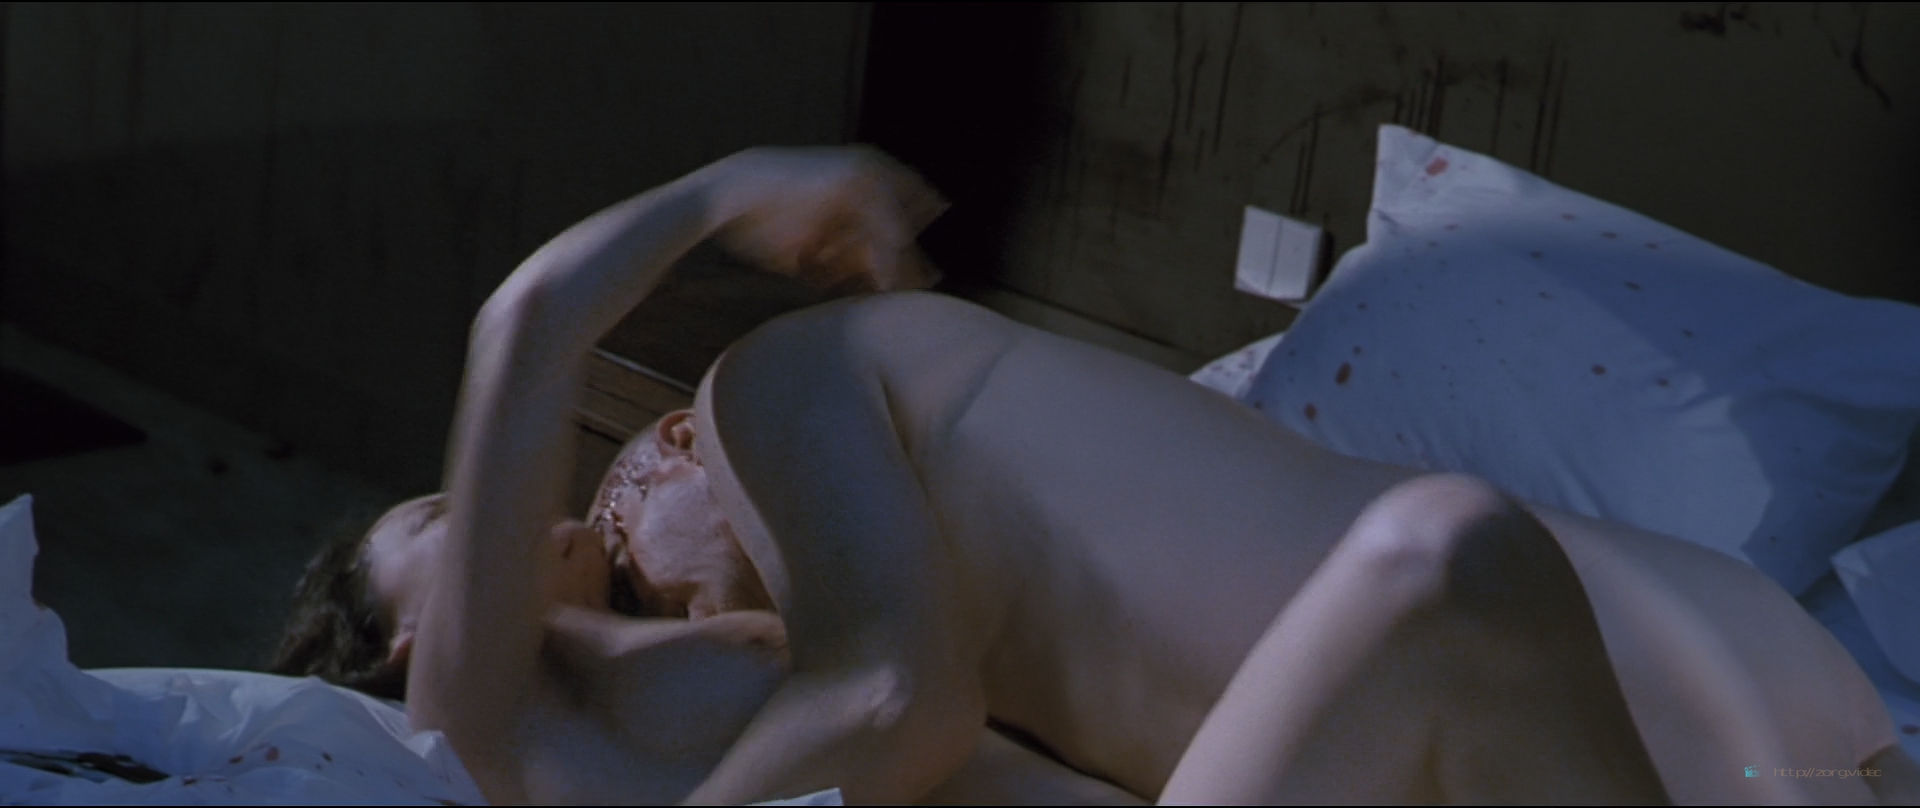 Connie Nielsen nude and Chloë Sevigny butt - Demonlover (2002) HD 1080p BluRay (3)